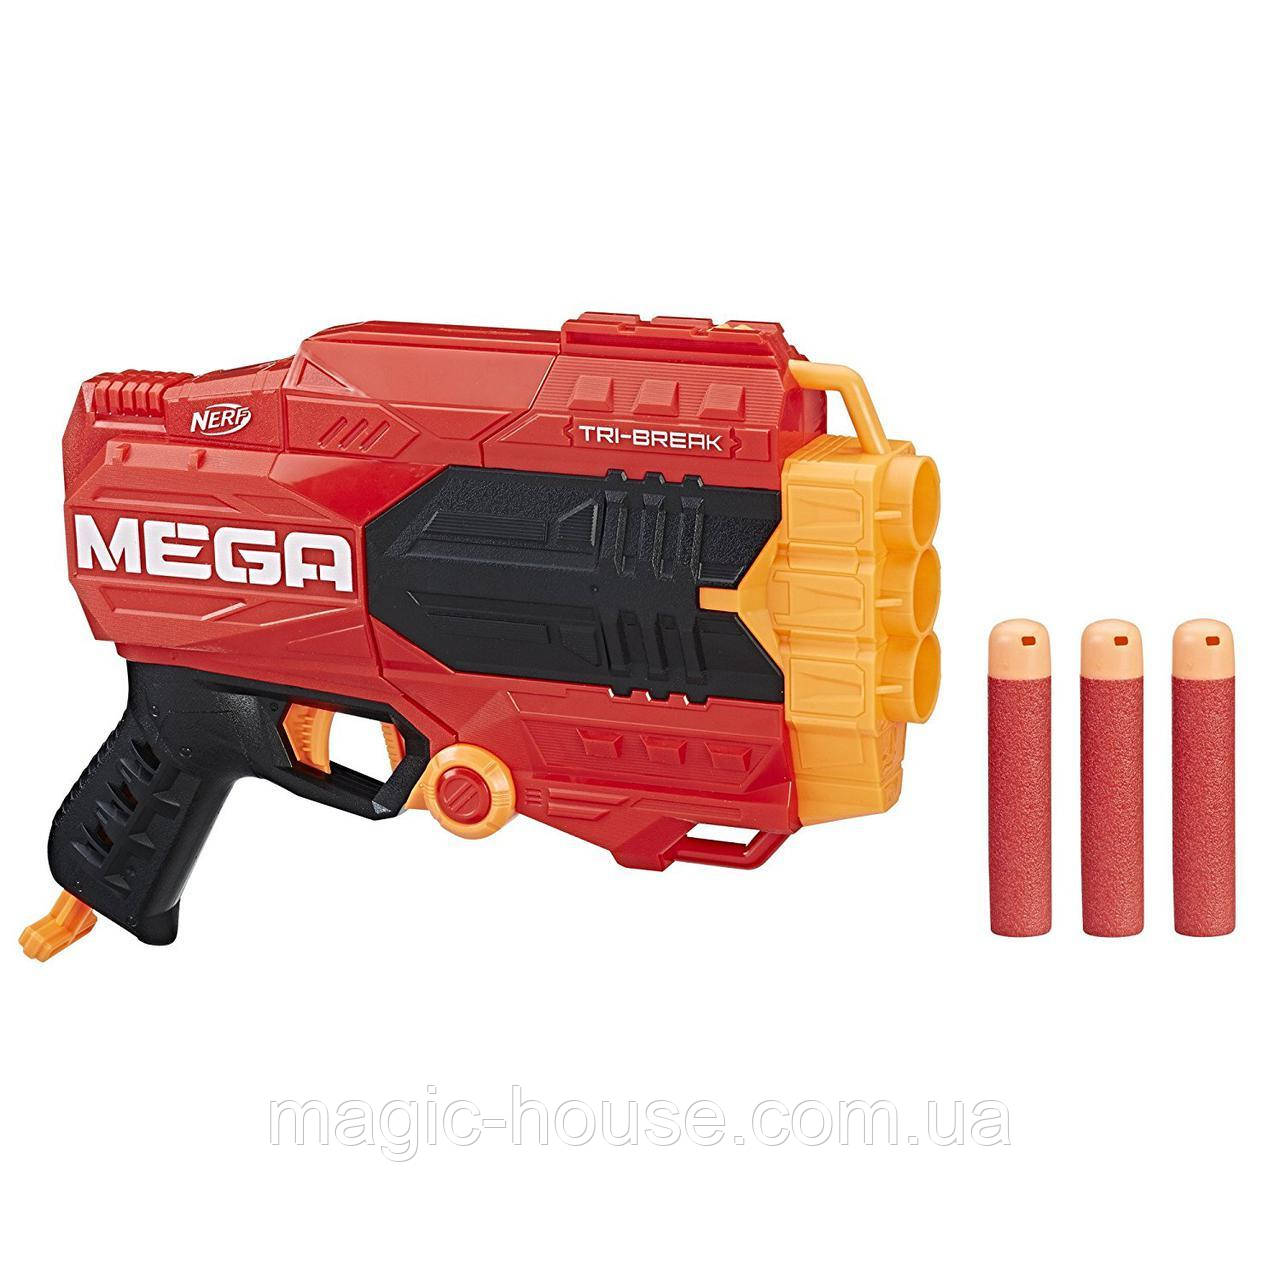 Бластер Nerf Мега Три-Брейк N-Strike Mega Tri-Break